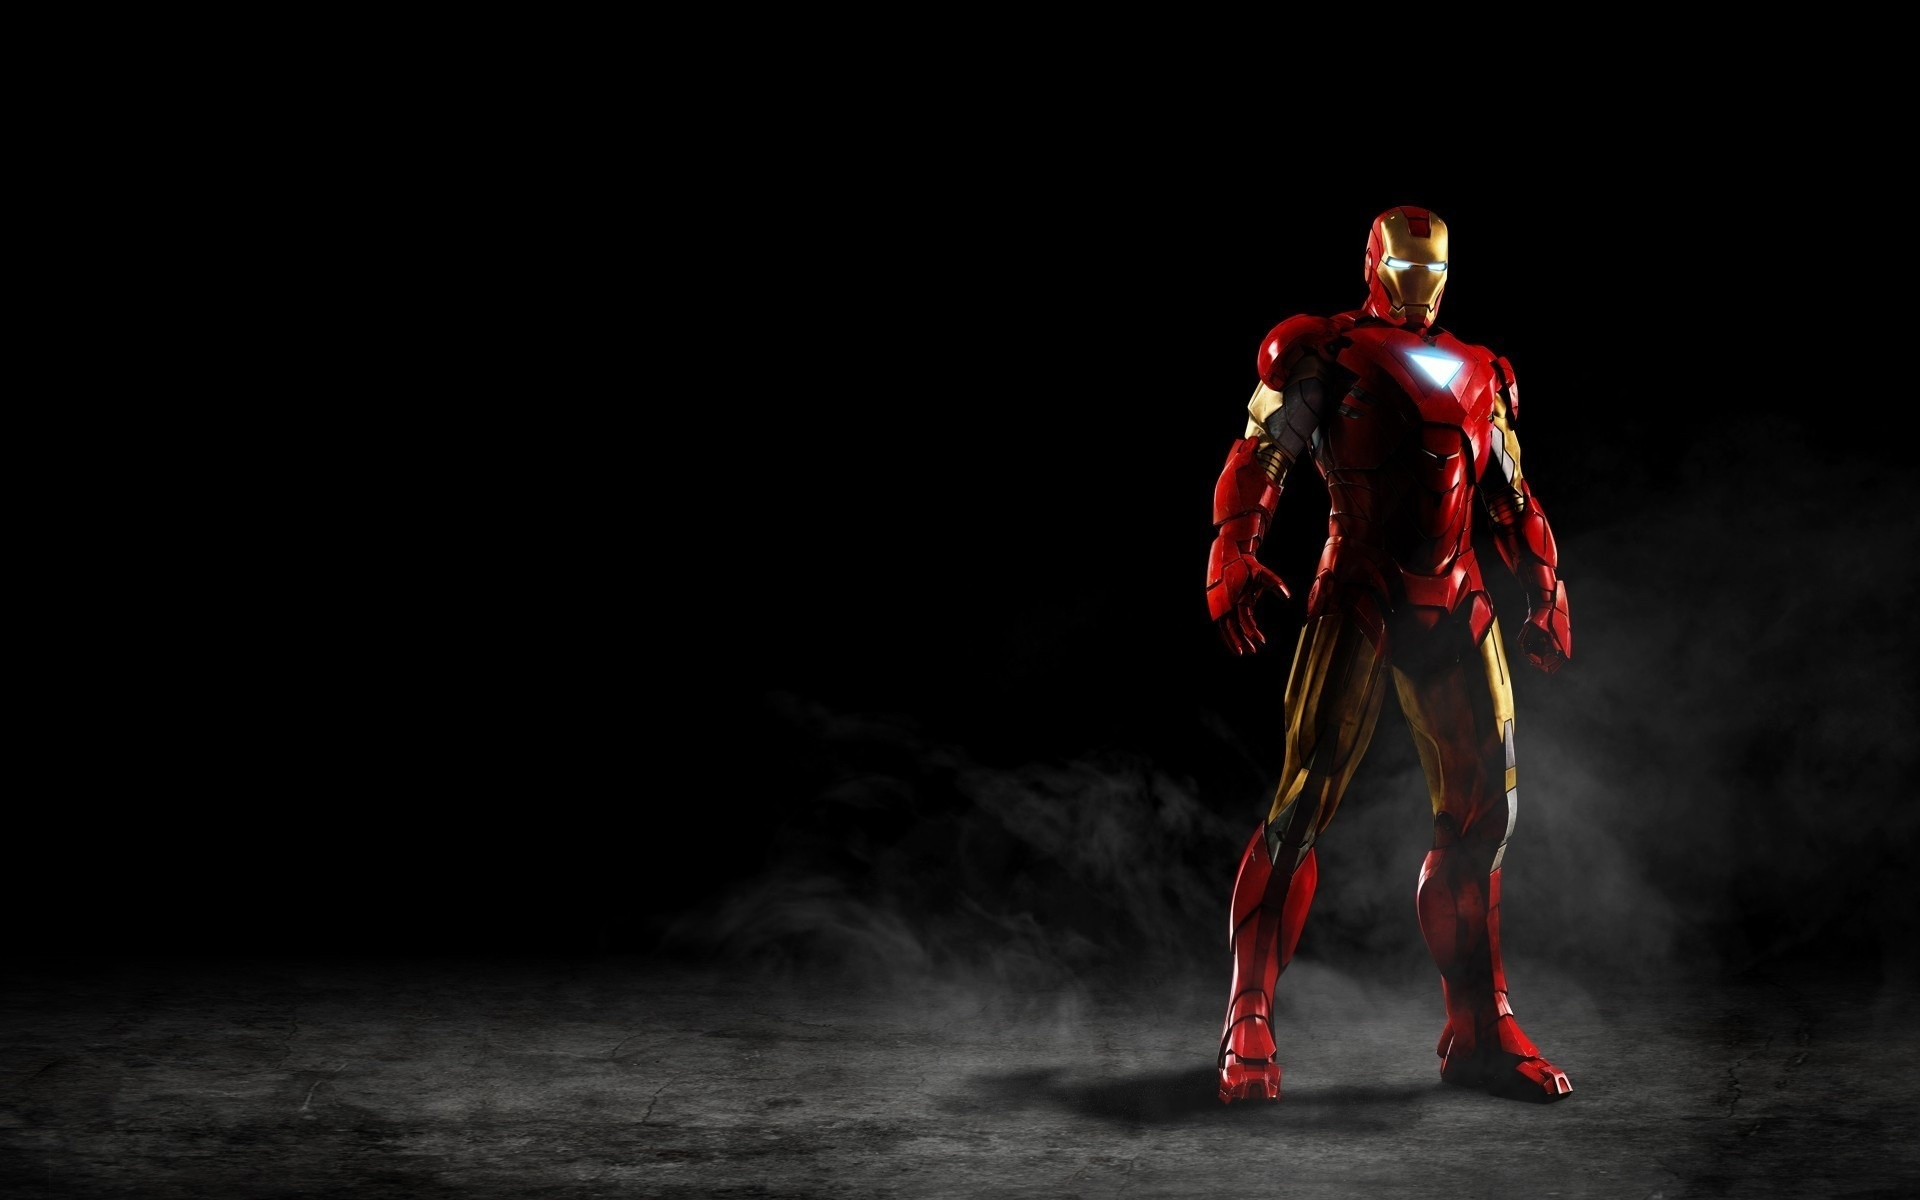 iron man 3 images iron man hd wallpaper and background photos (31780175)